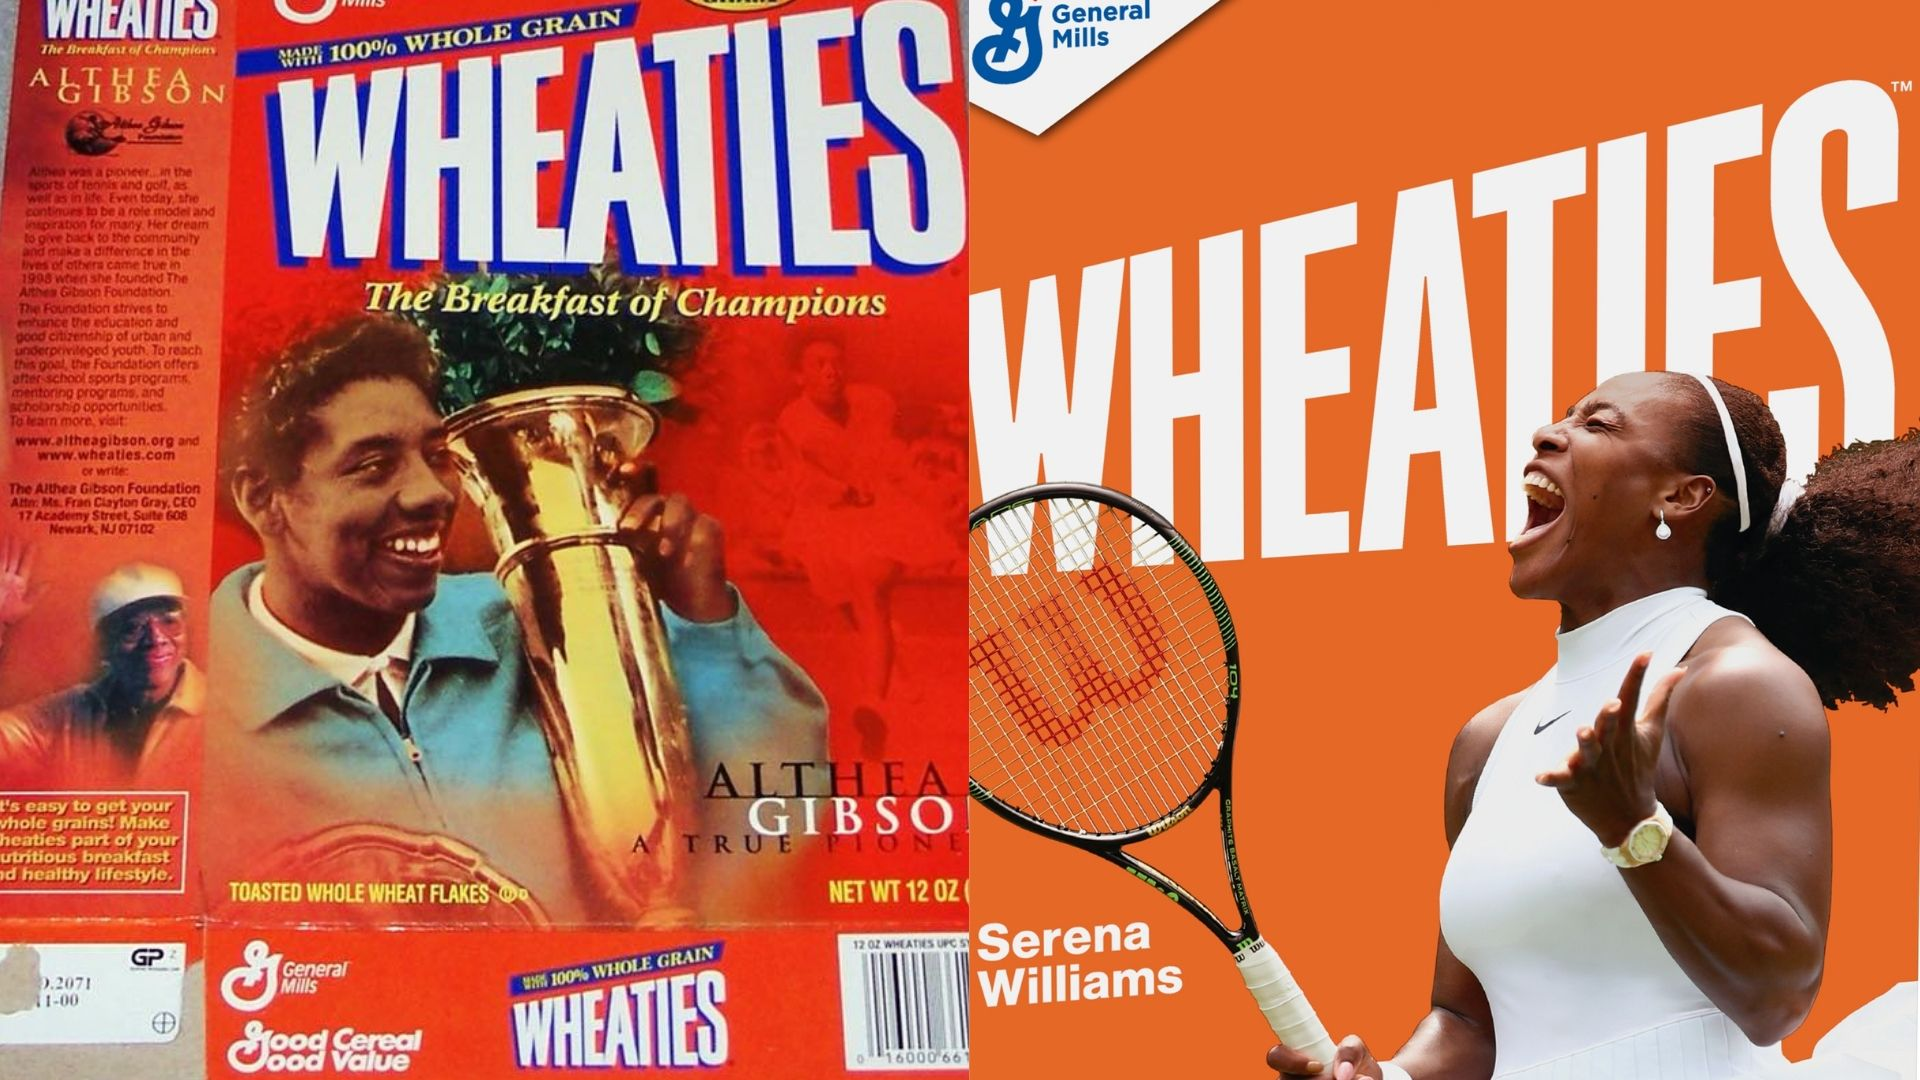 Serena Williams Follows In The Footsteps Of Althea Gibson As The Second Black Woman Tennis Player To Be Featured On A Wheaties Box